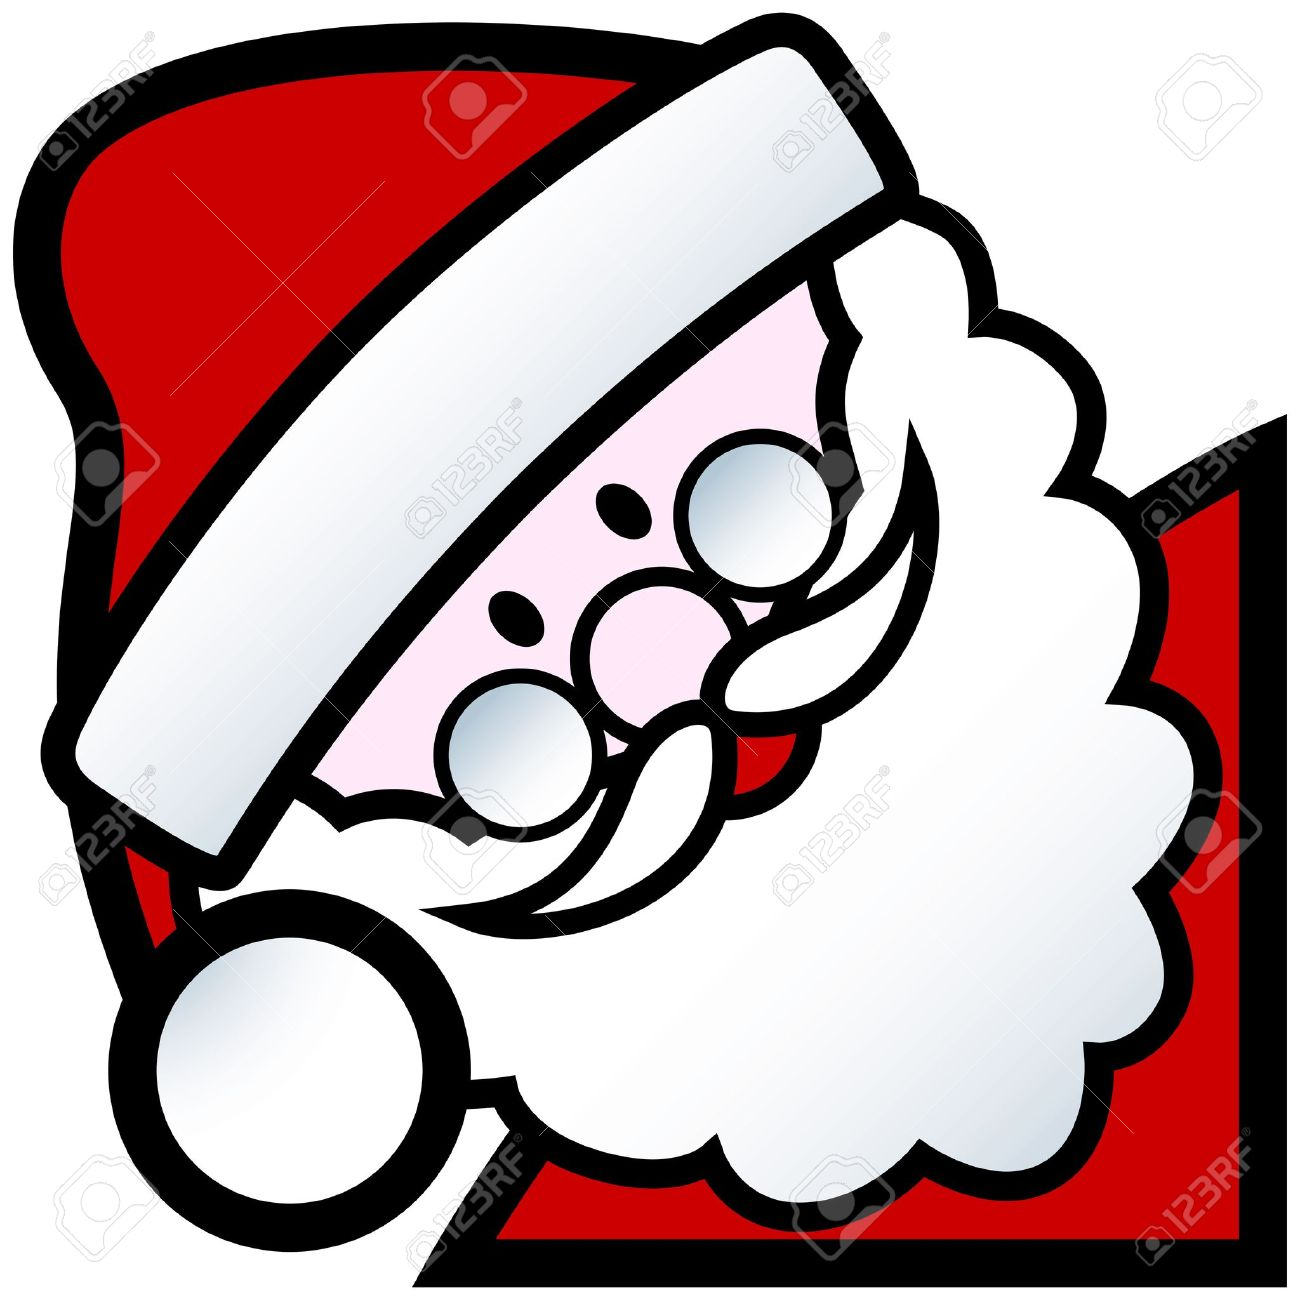 Father Christmas Cartoon Images.Cartoon Of Happy Smiling Father Christmas Character